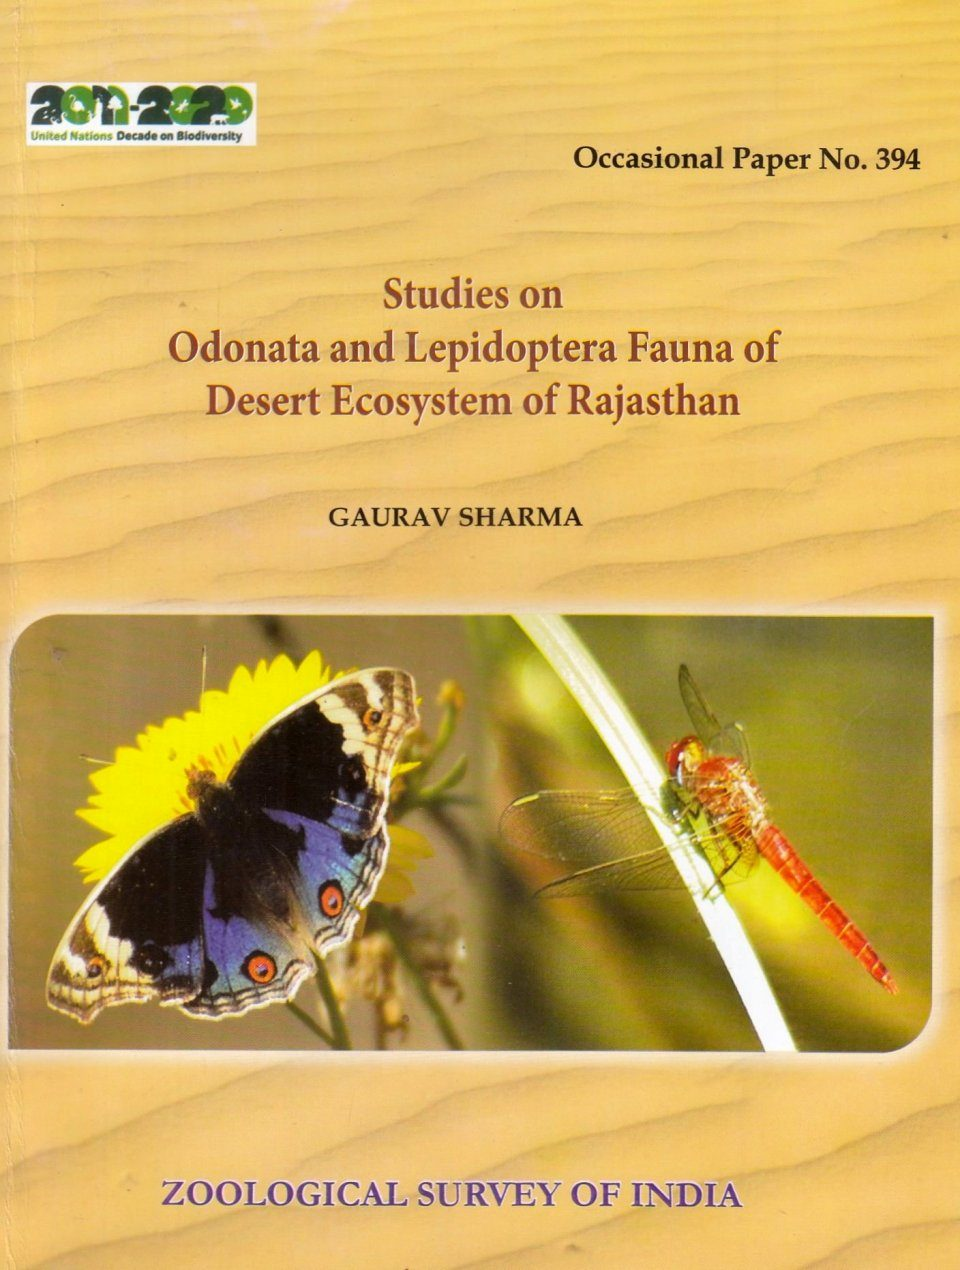 Studies on Odonata and Lepidoptera Fauna of Desert Ecosystem of Rajasthan